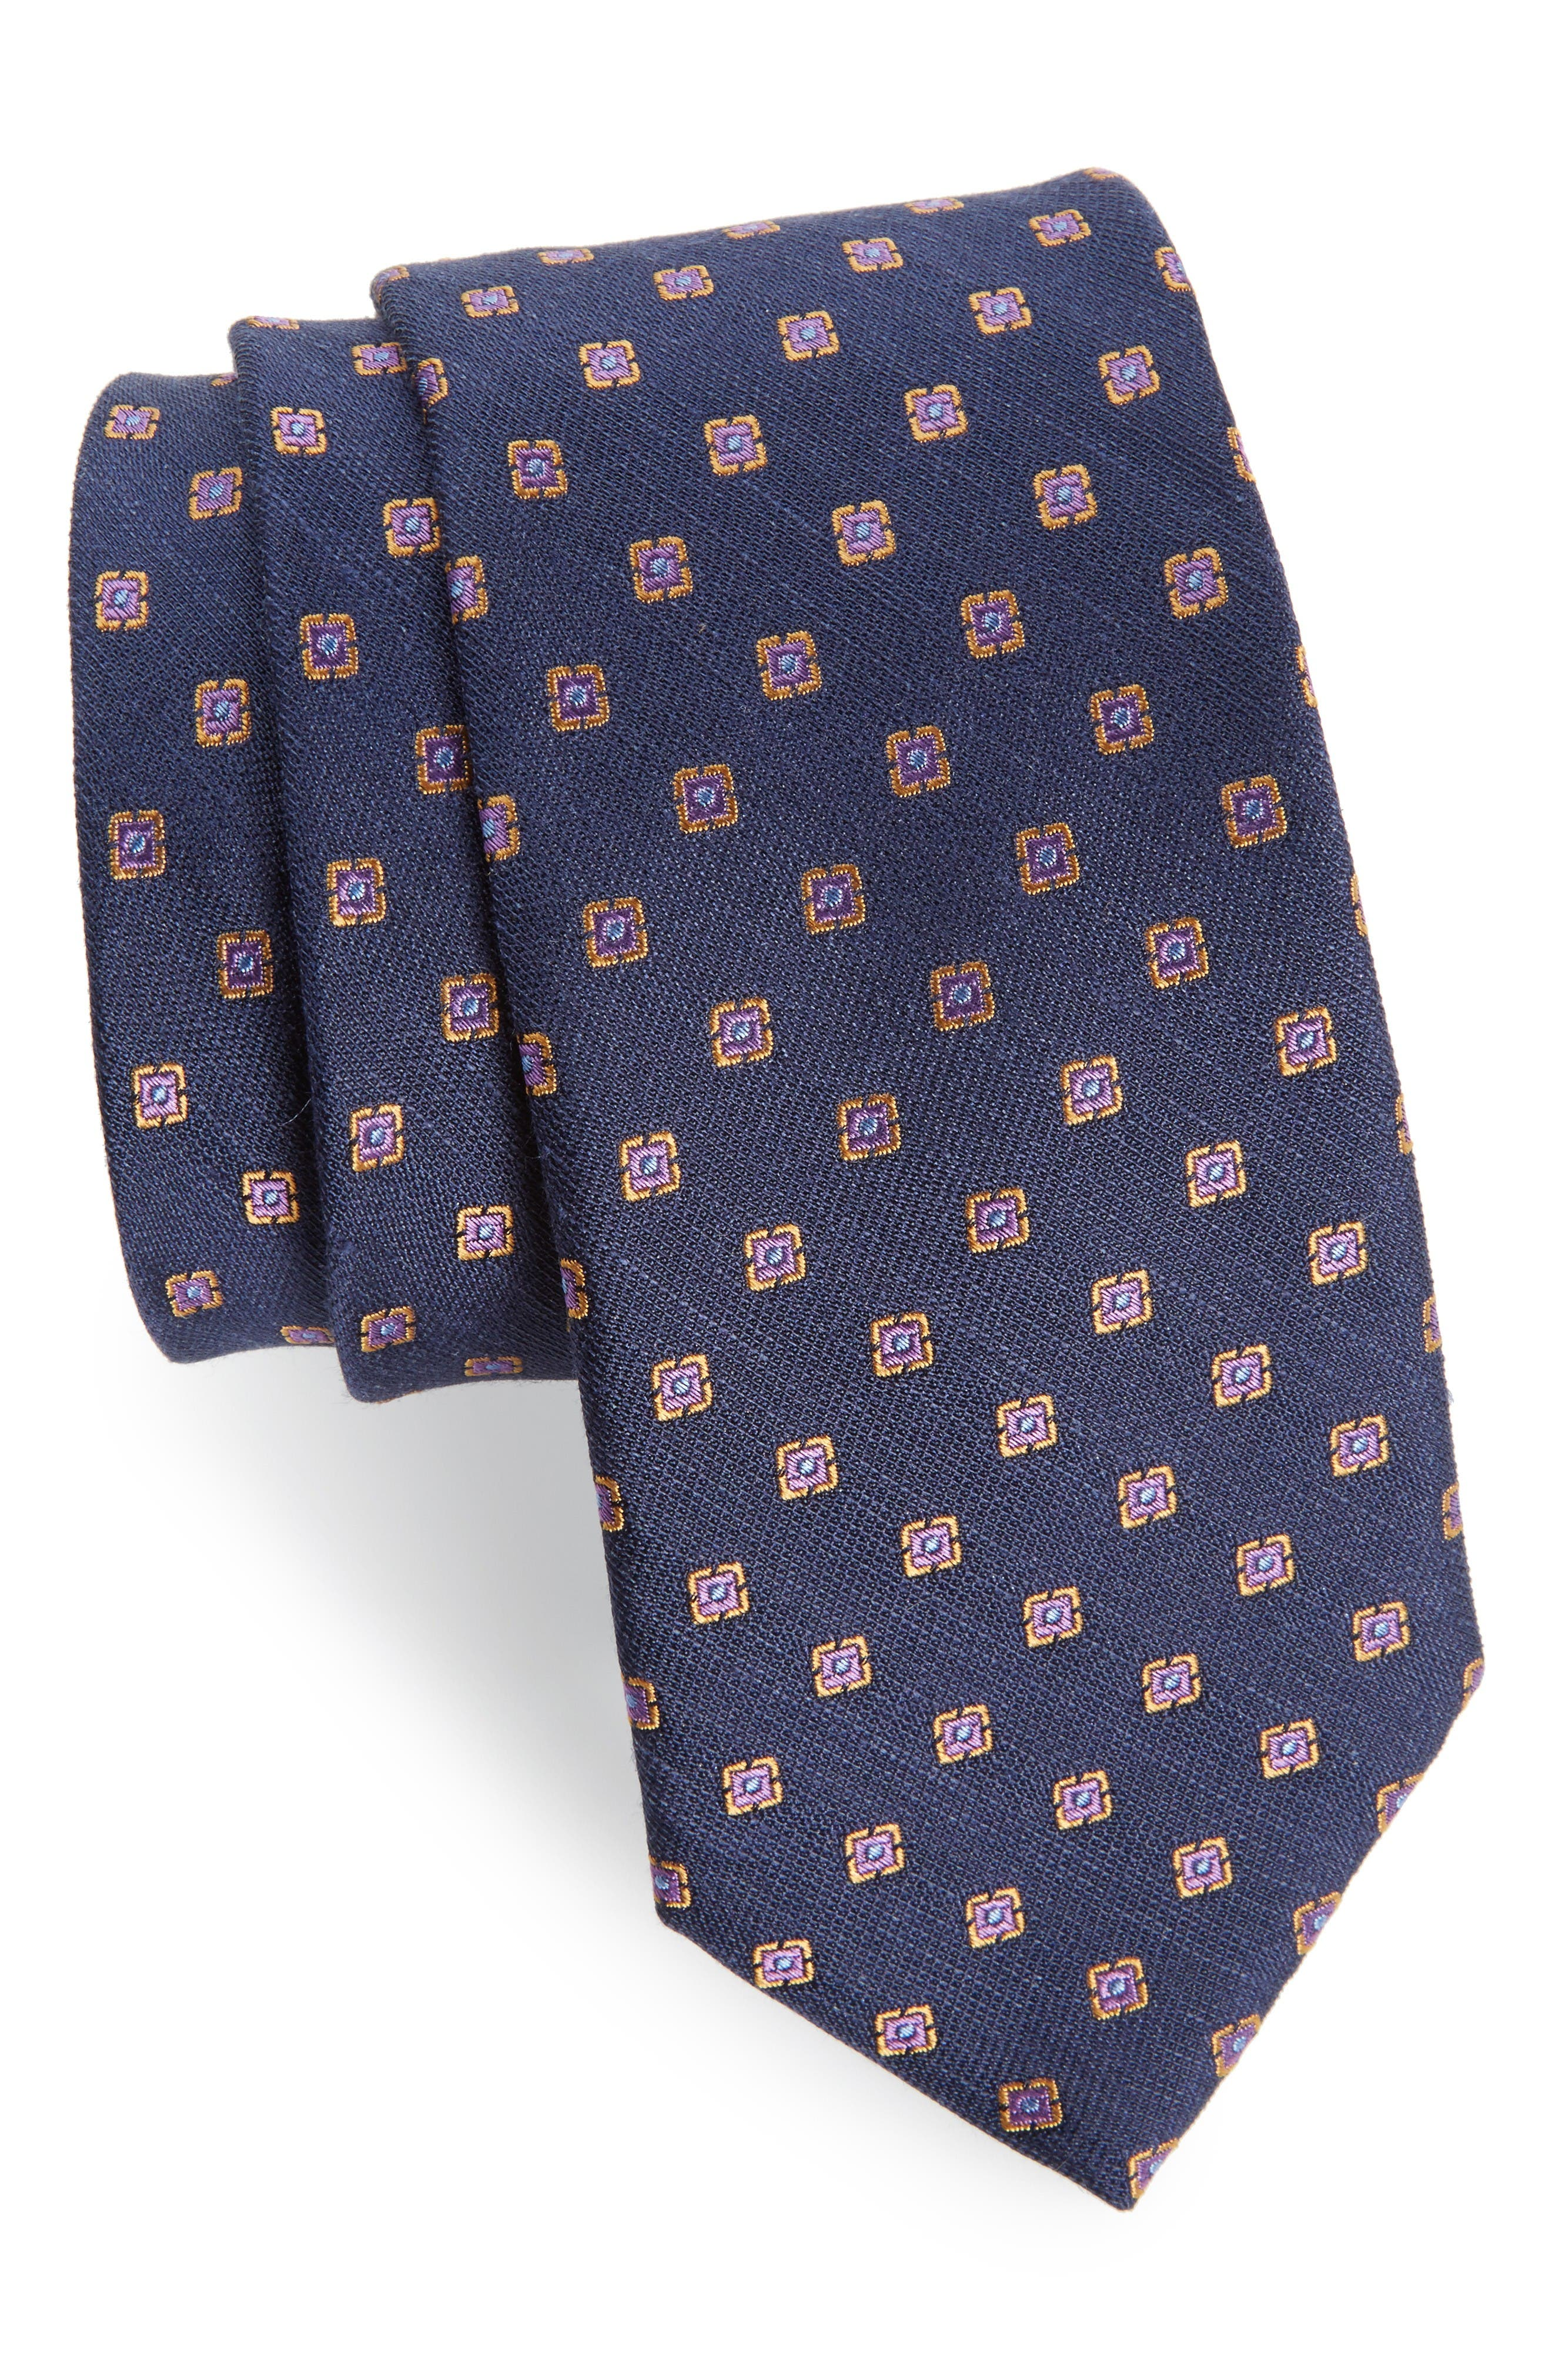 THE TIE BAR Medallion Scene Silk & Linen Tie